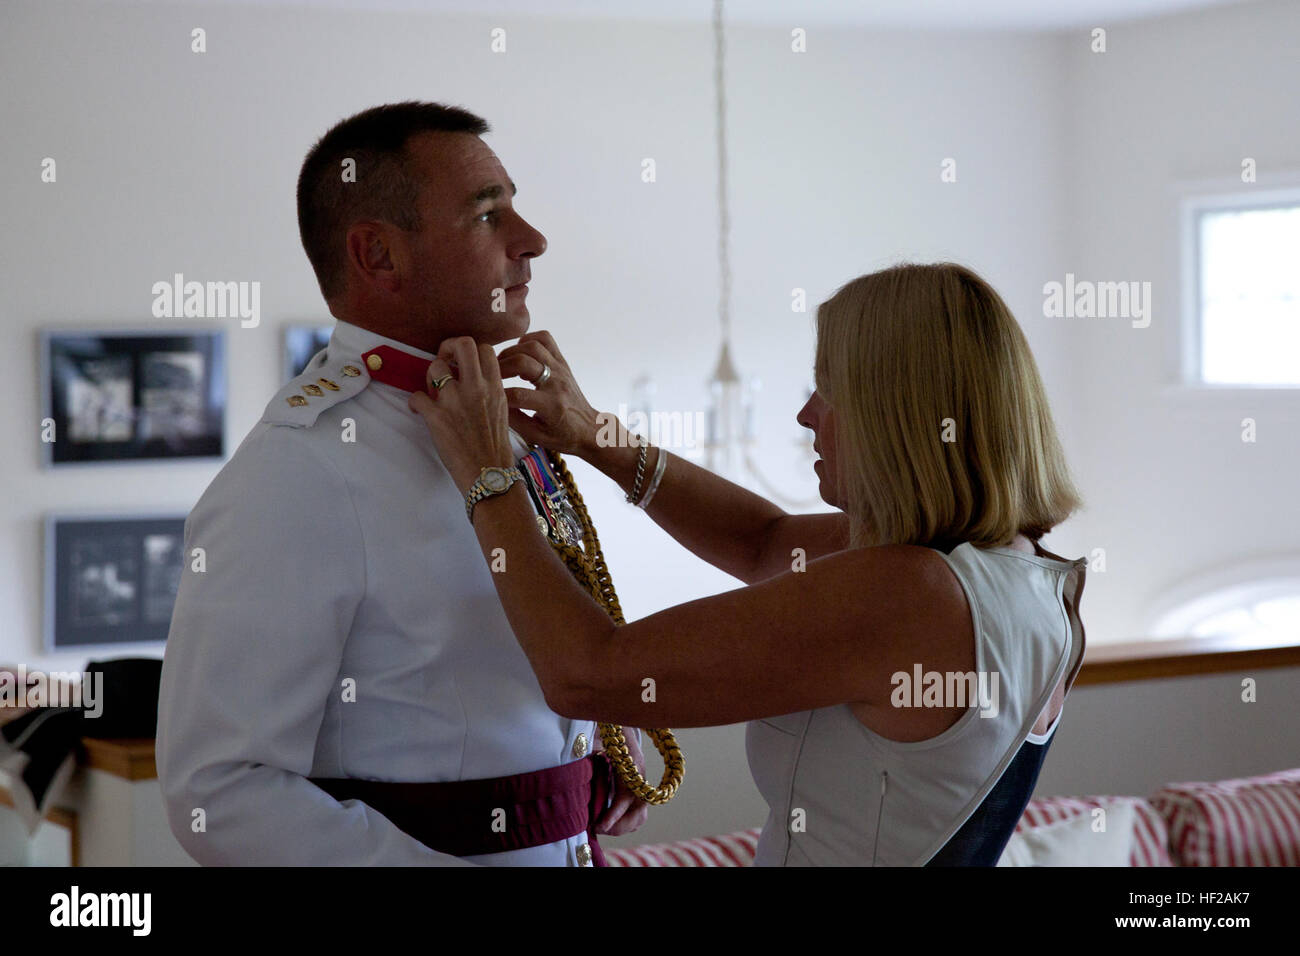 Helen Lister, right, adjusts the uniform collar of her husband, British Royal Marine Attache Col. Al Lister, at Stock Photo